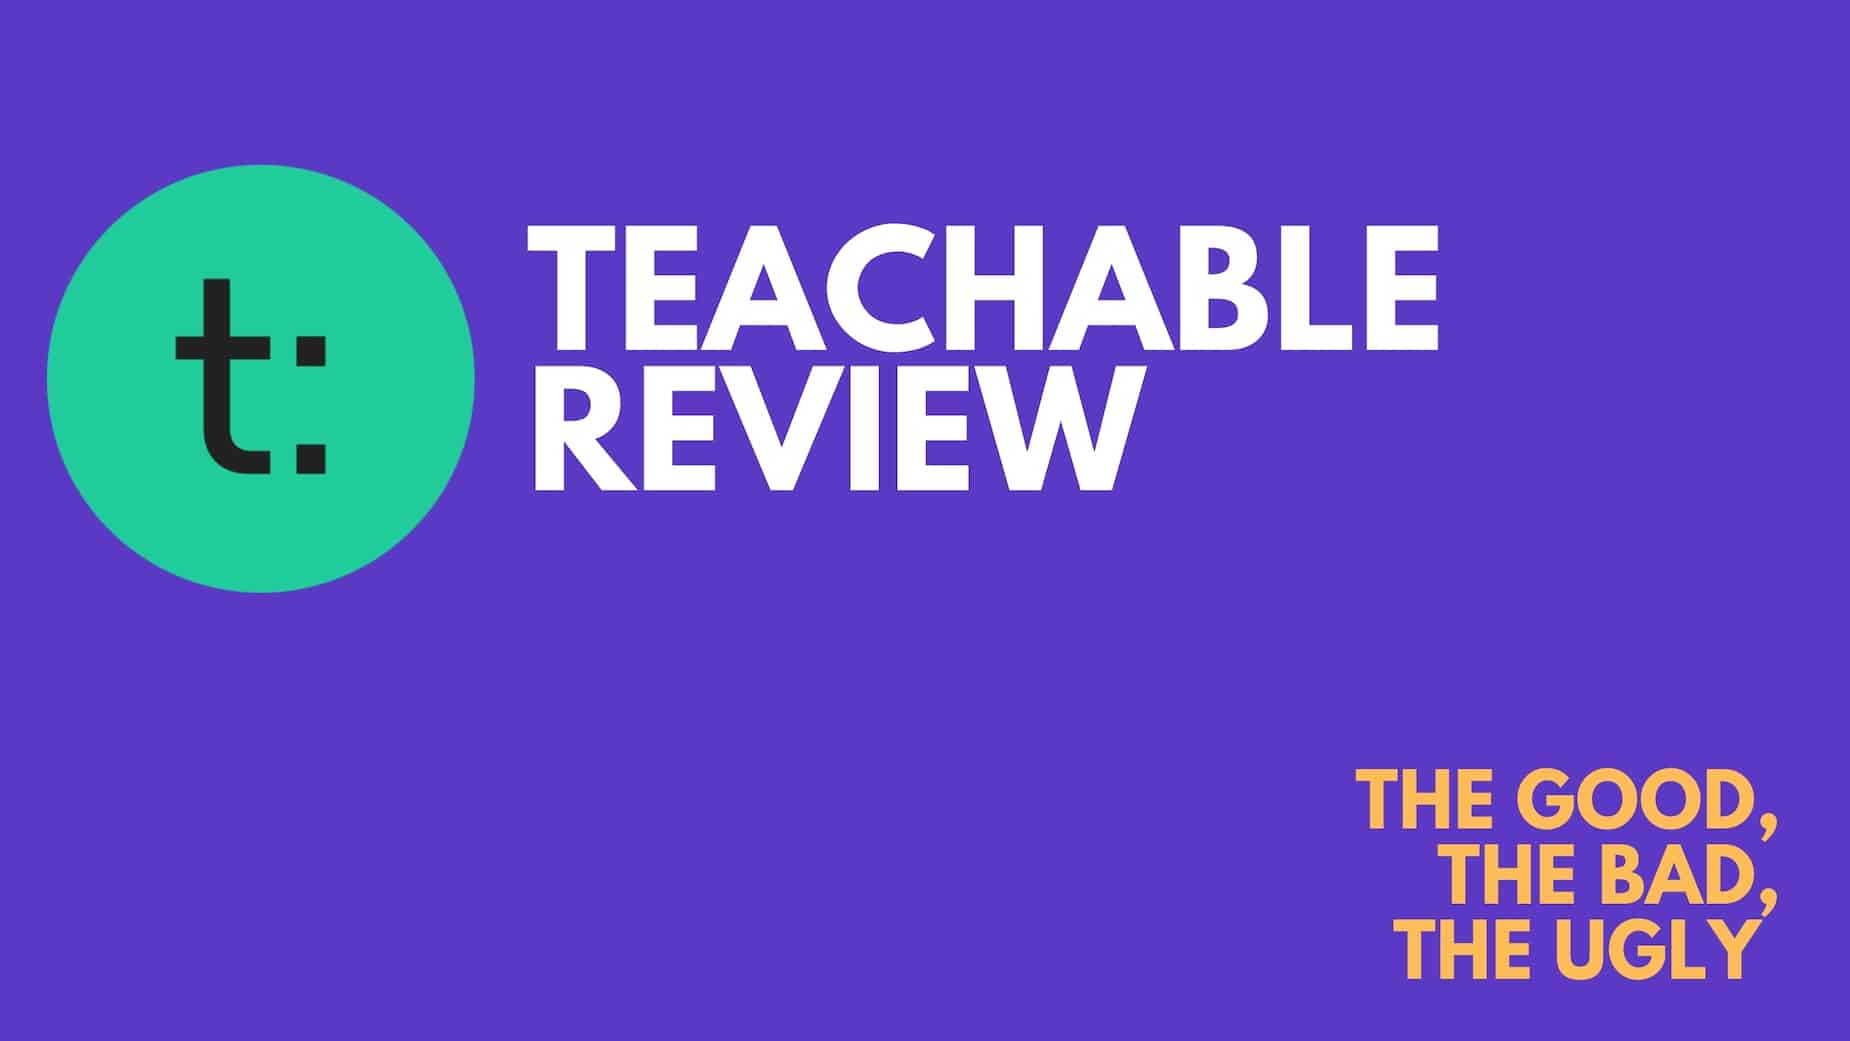 Teachable Review: Is This the Best Choice in 2021?